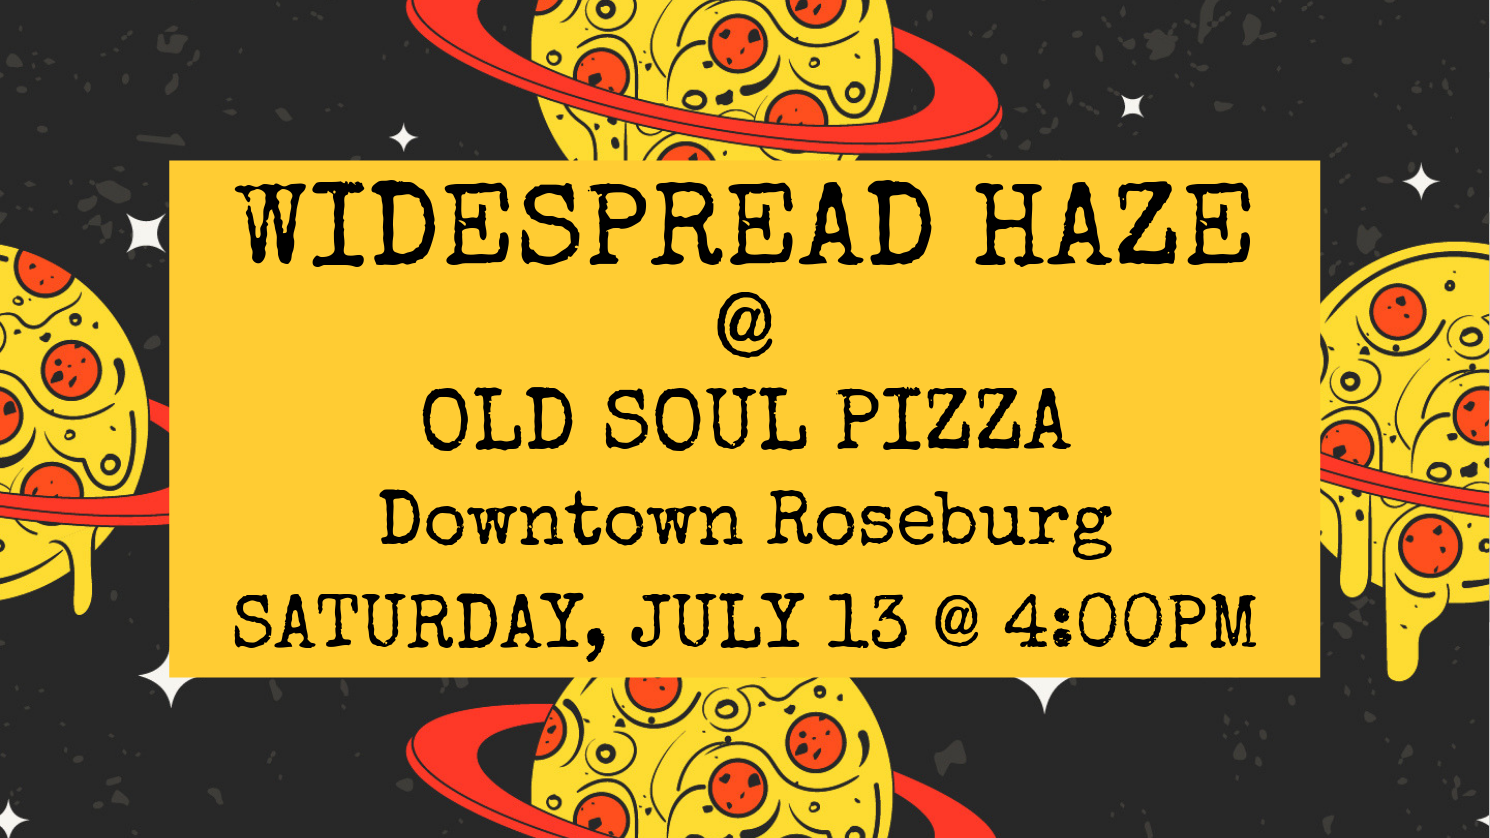 widespread-haze-old-soul-pizza-july-fb.png